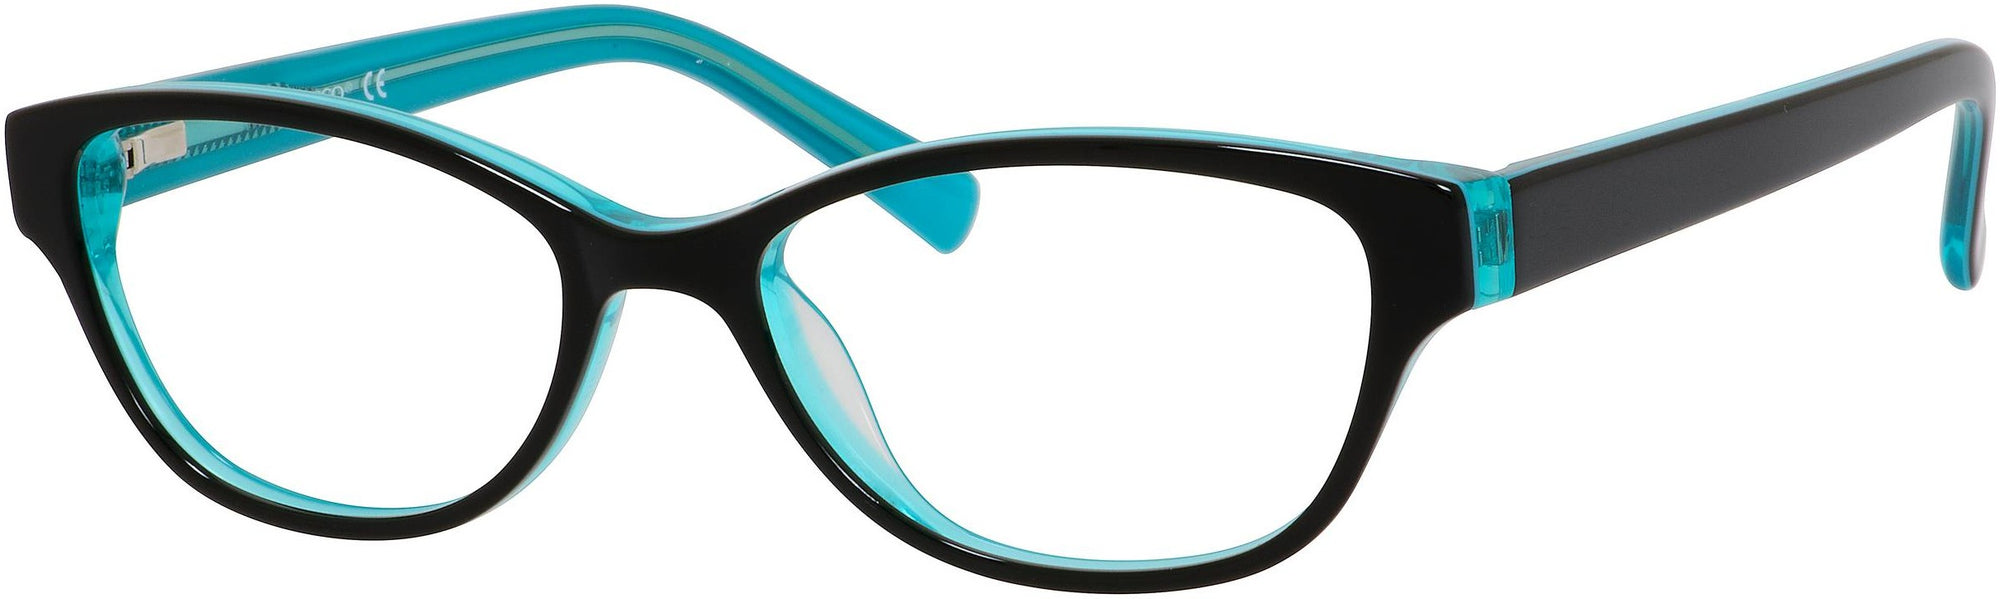 Adensco AD 201 Oval Modified Eyeglasses 0DB5-0DB5  Black Turquoise (00 Demo Lens)